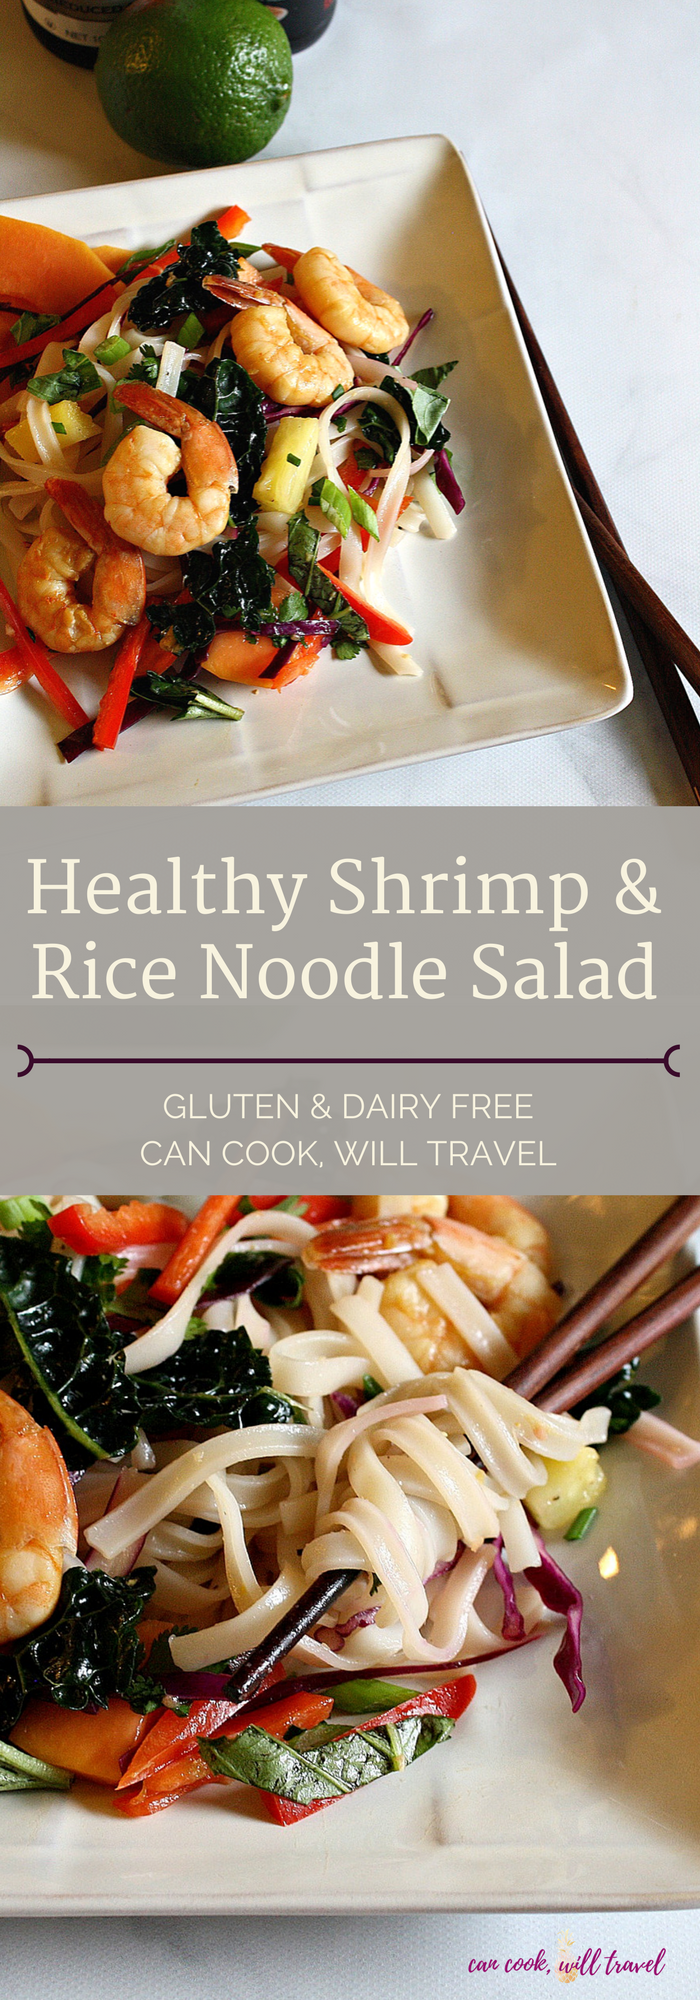 Healthy Shrimp & Rice Noodle Salad_Collage1